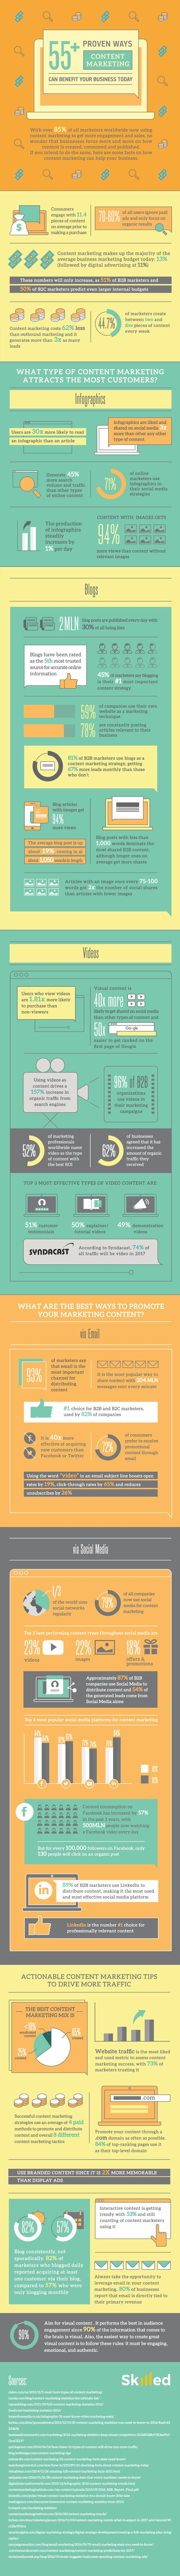 55 Ways Content Marketing Can Help Your Business – Writers Write